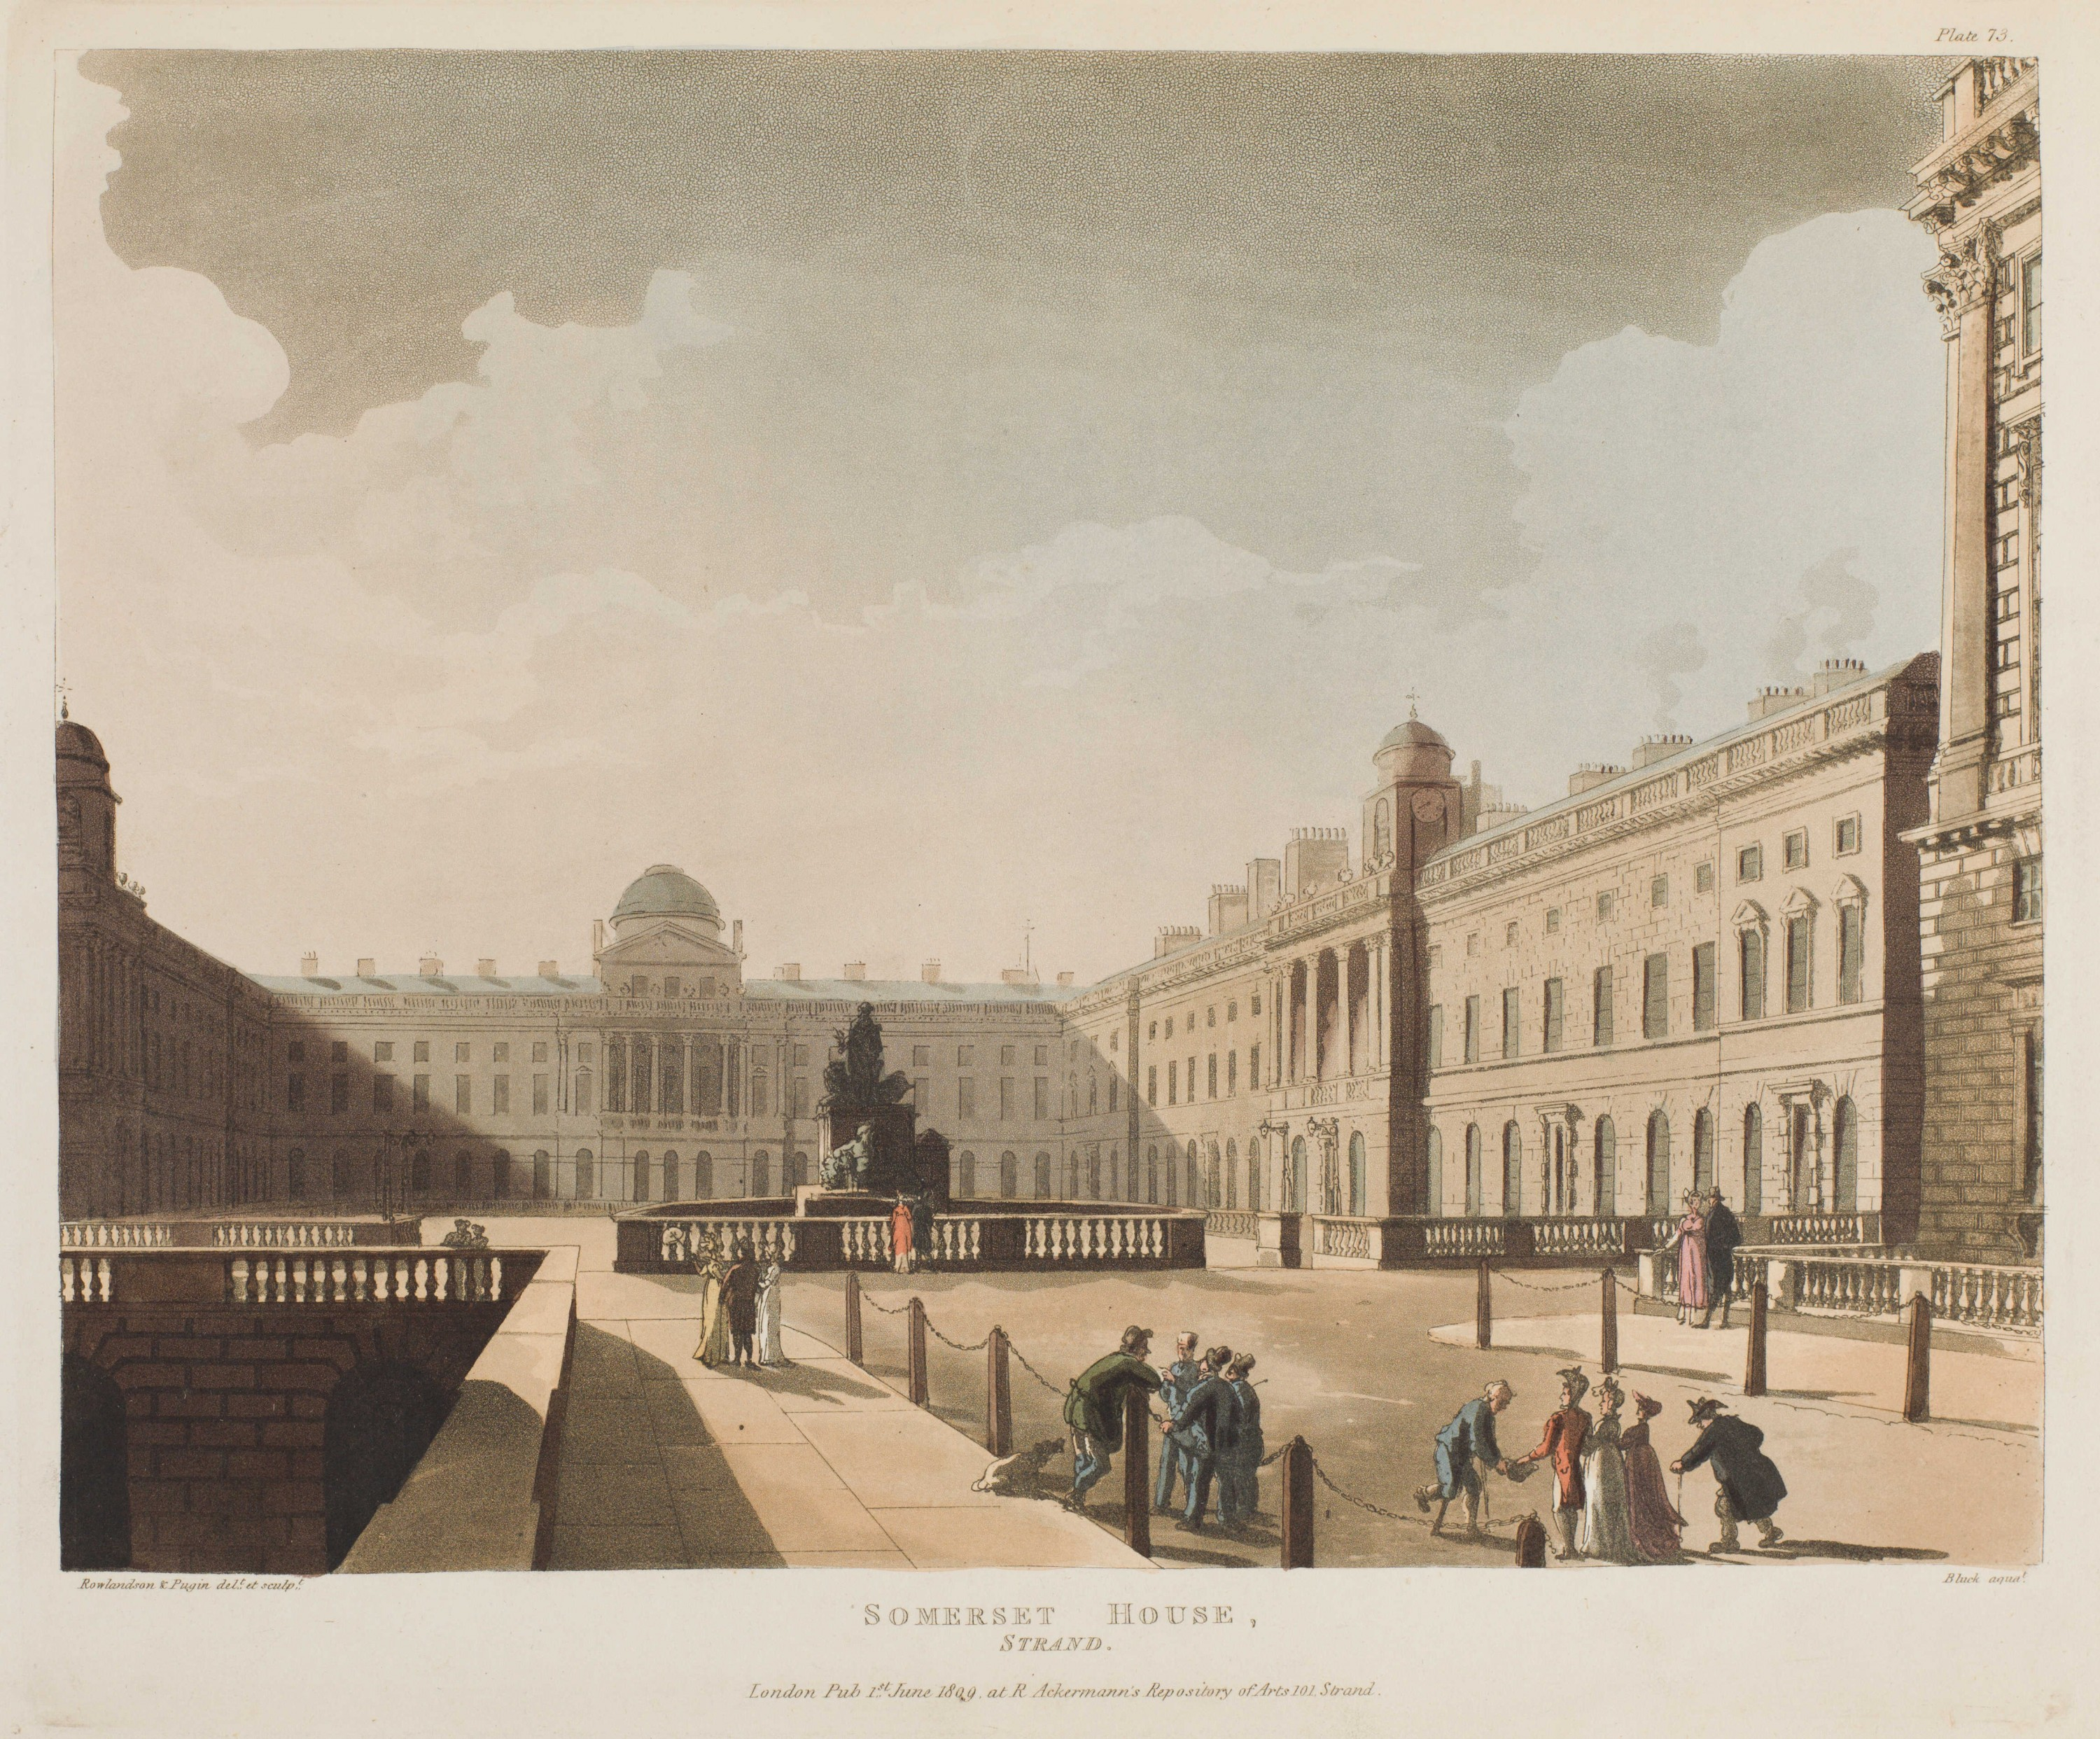 073 - Somerset House, Strand